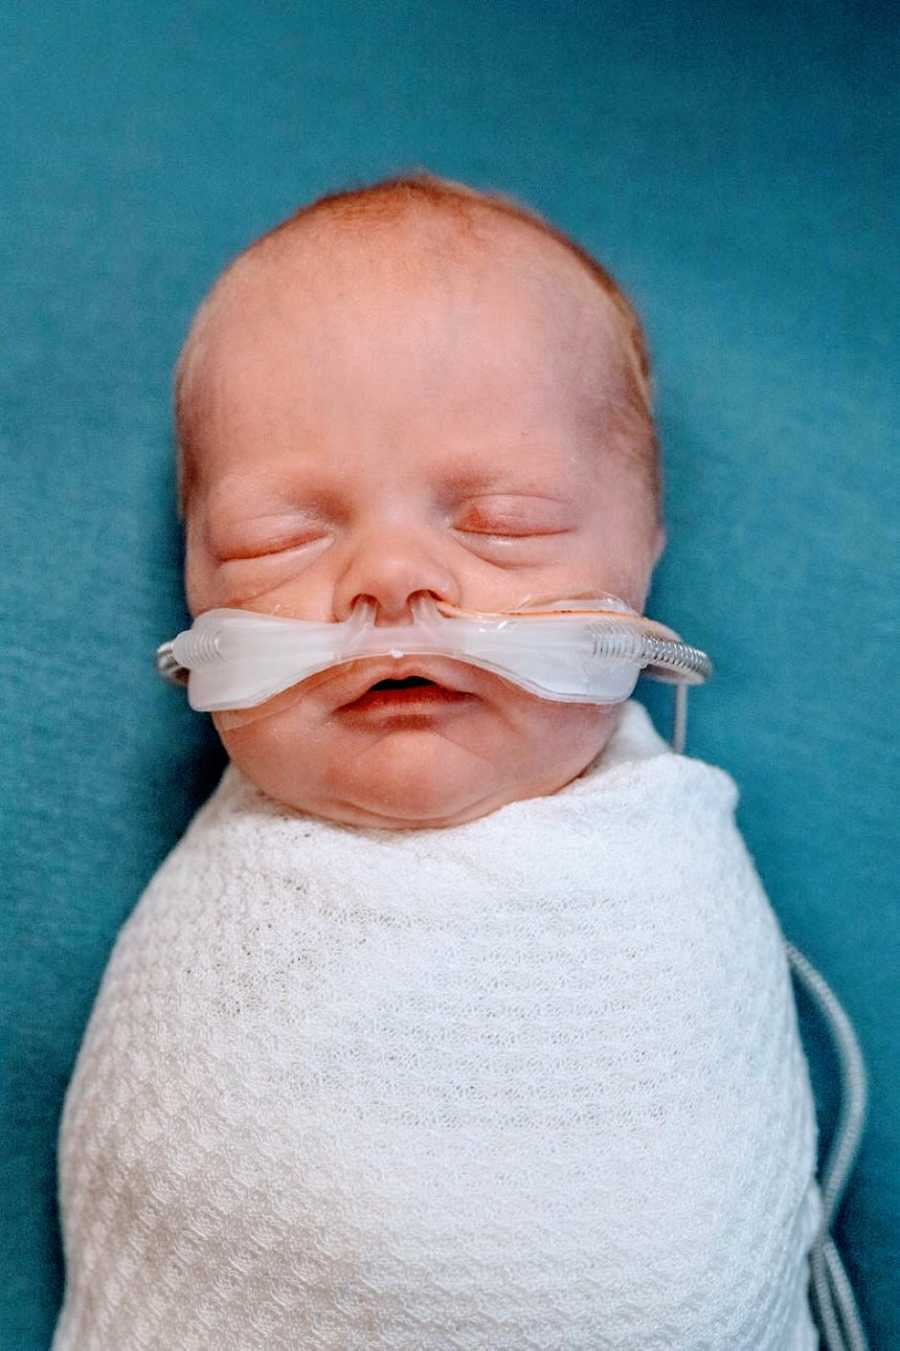 Mom shares photo of newborn baby swaddled in a white blankets with tubes in his nose